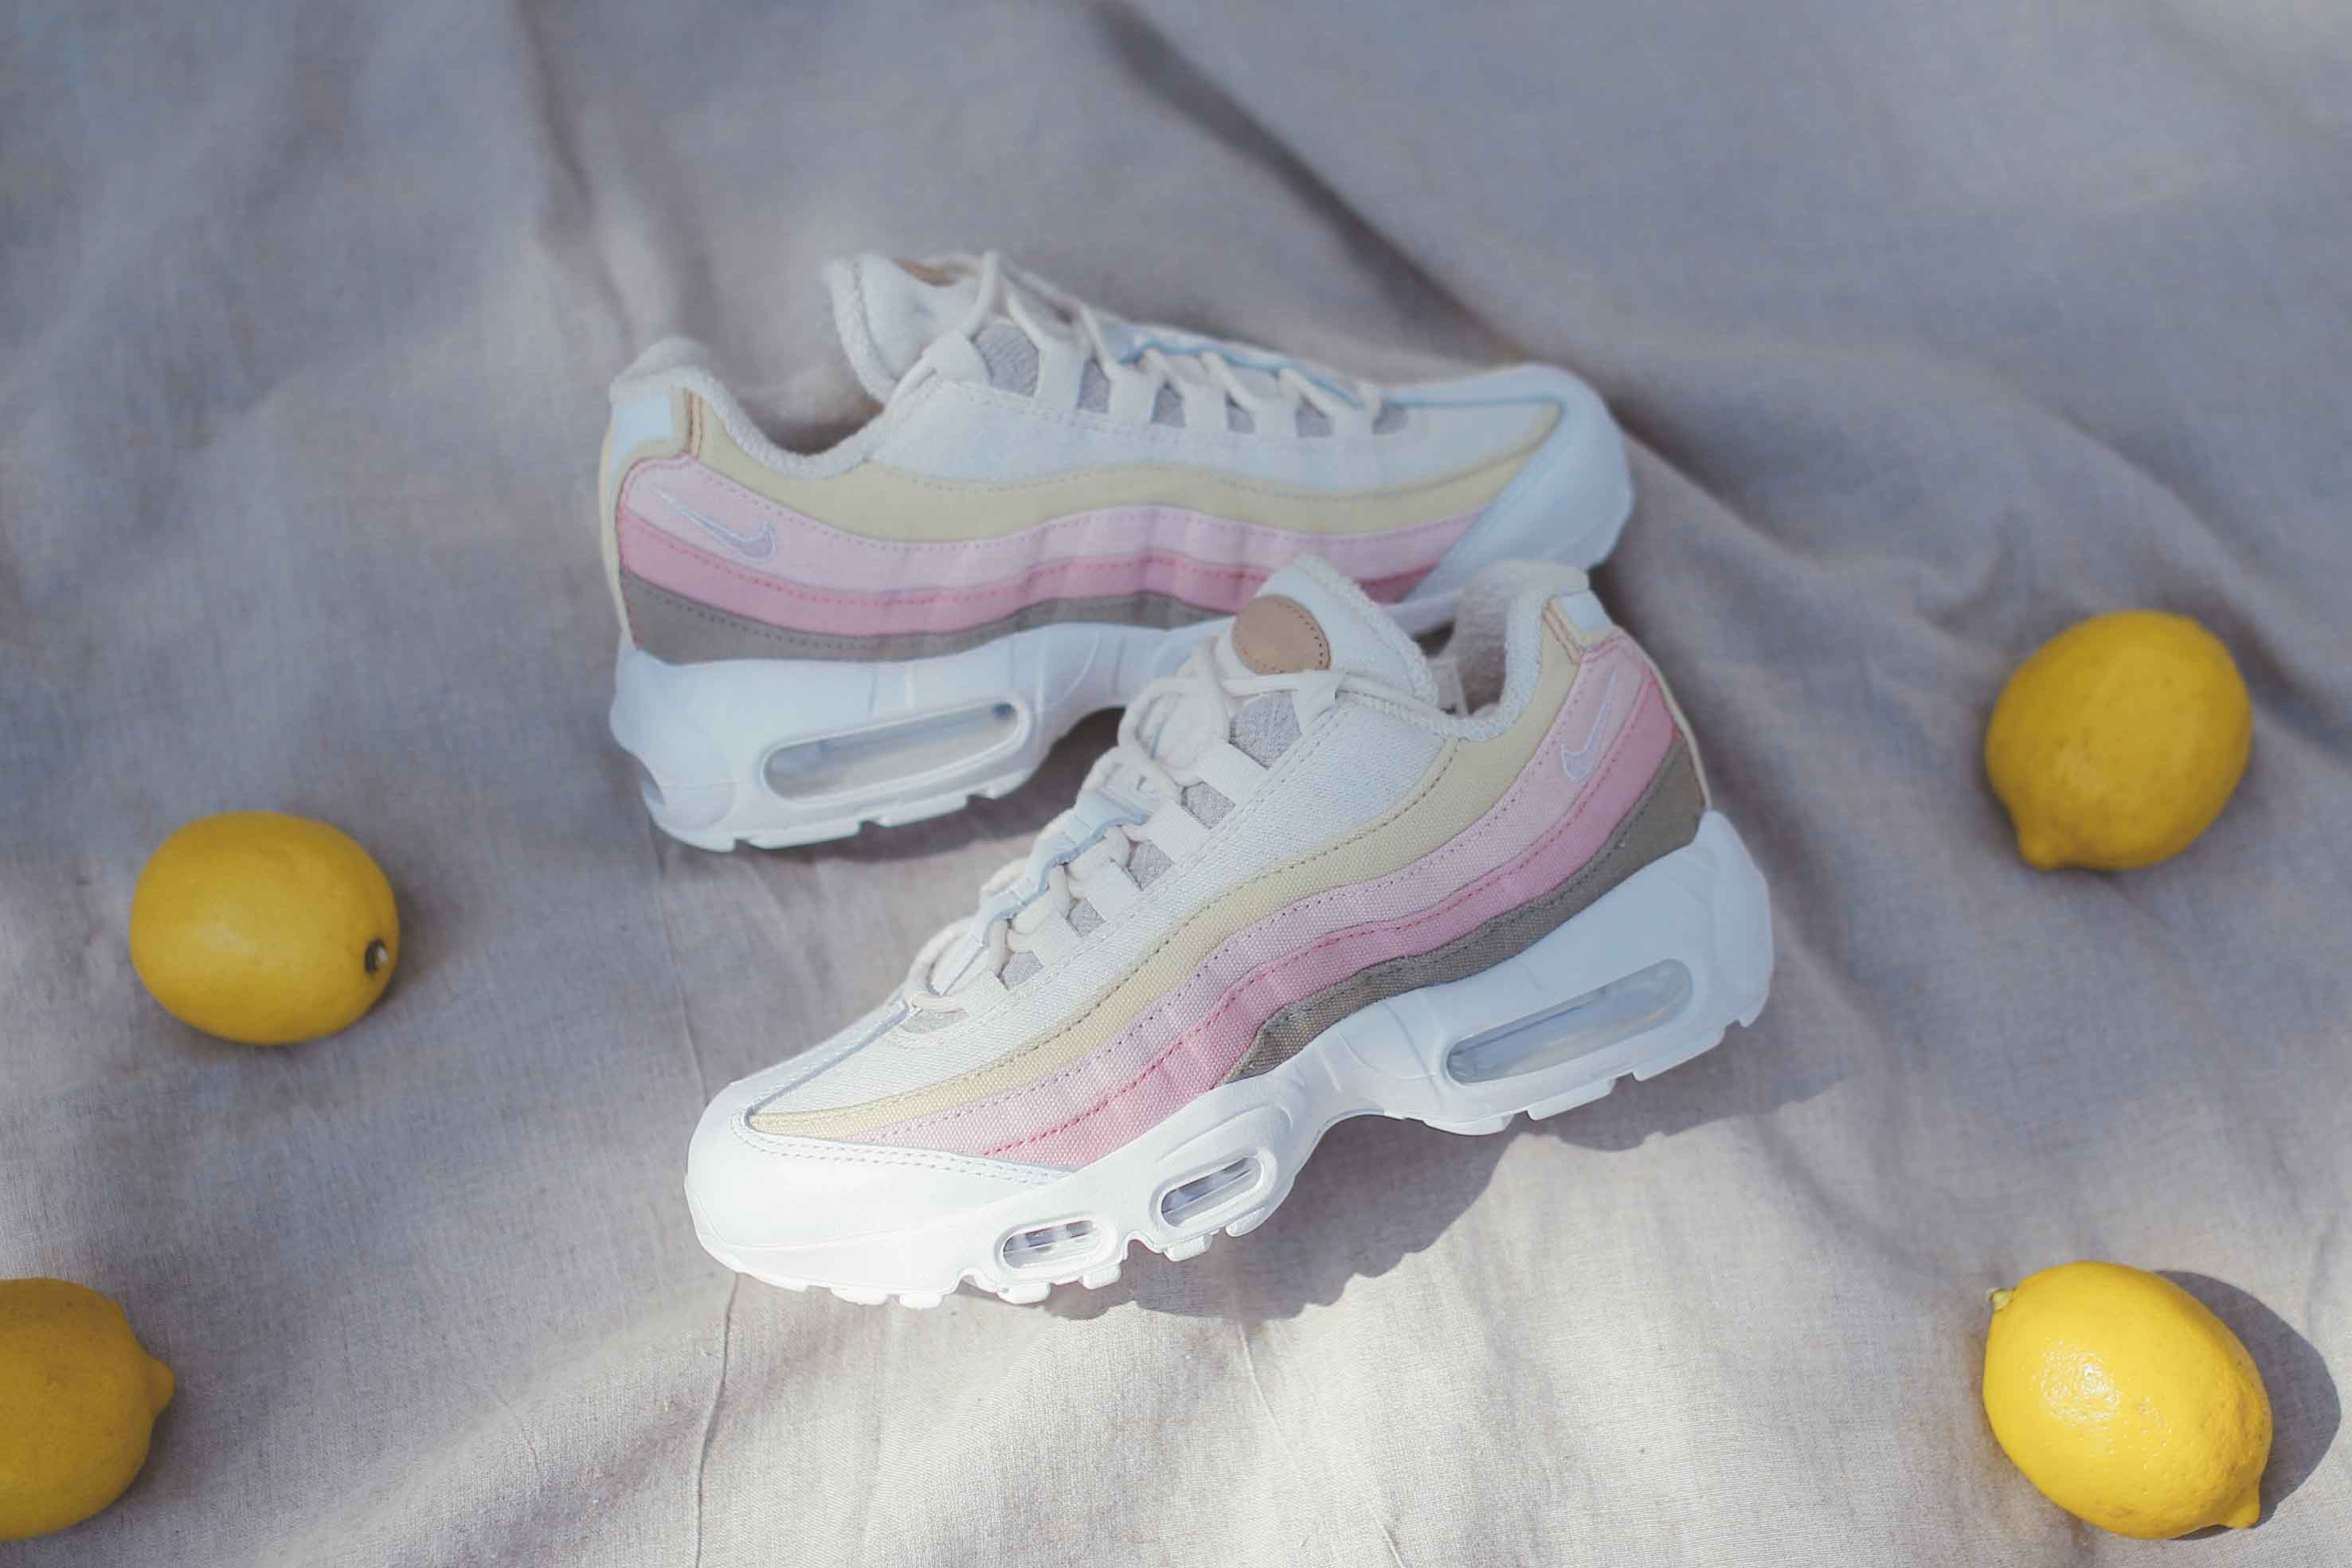 Nike Air Max 95 The Plant Color Collection Spring Pink Sneaker